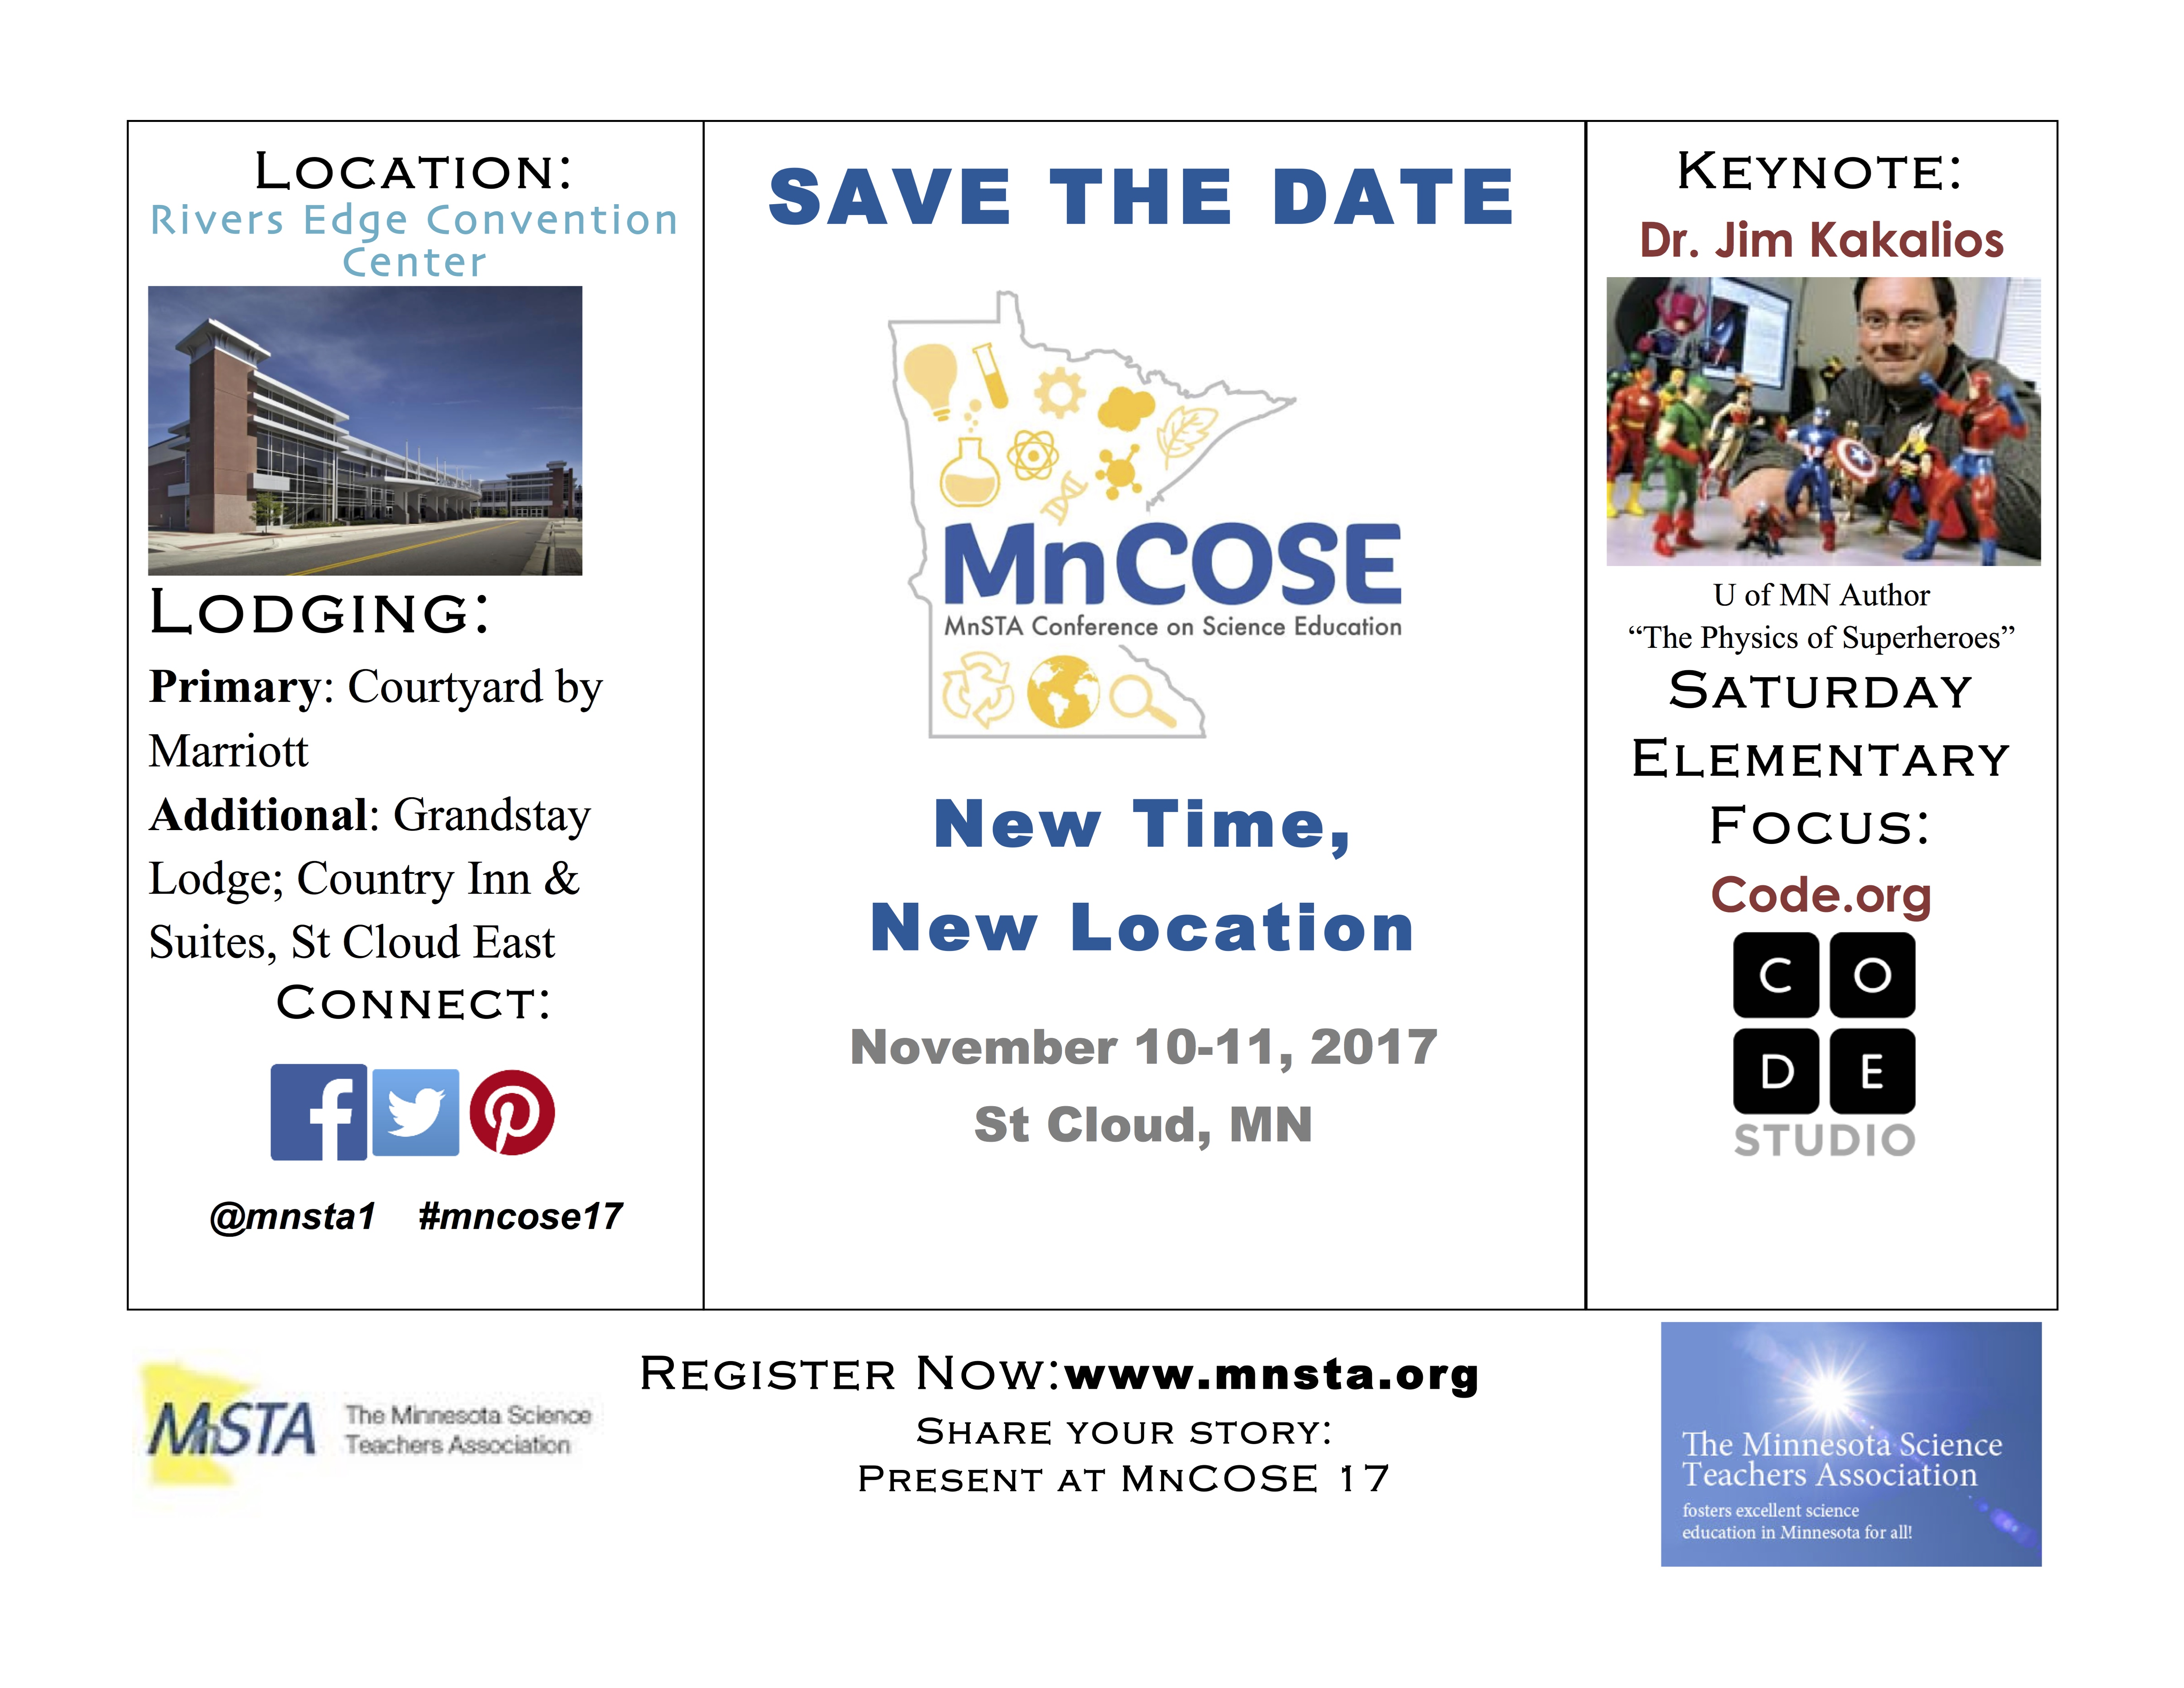 MnCOSE17 Save the Date image